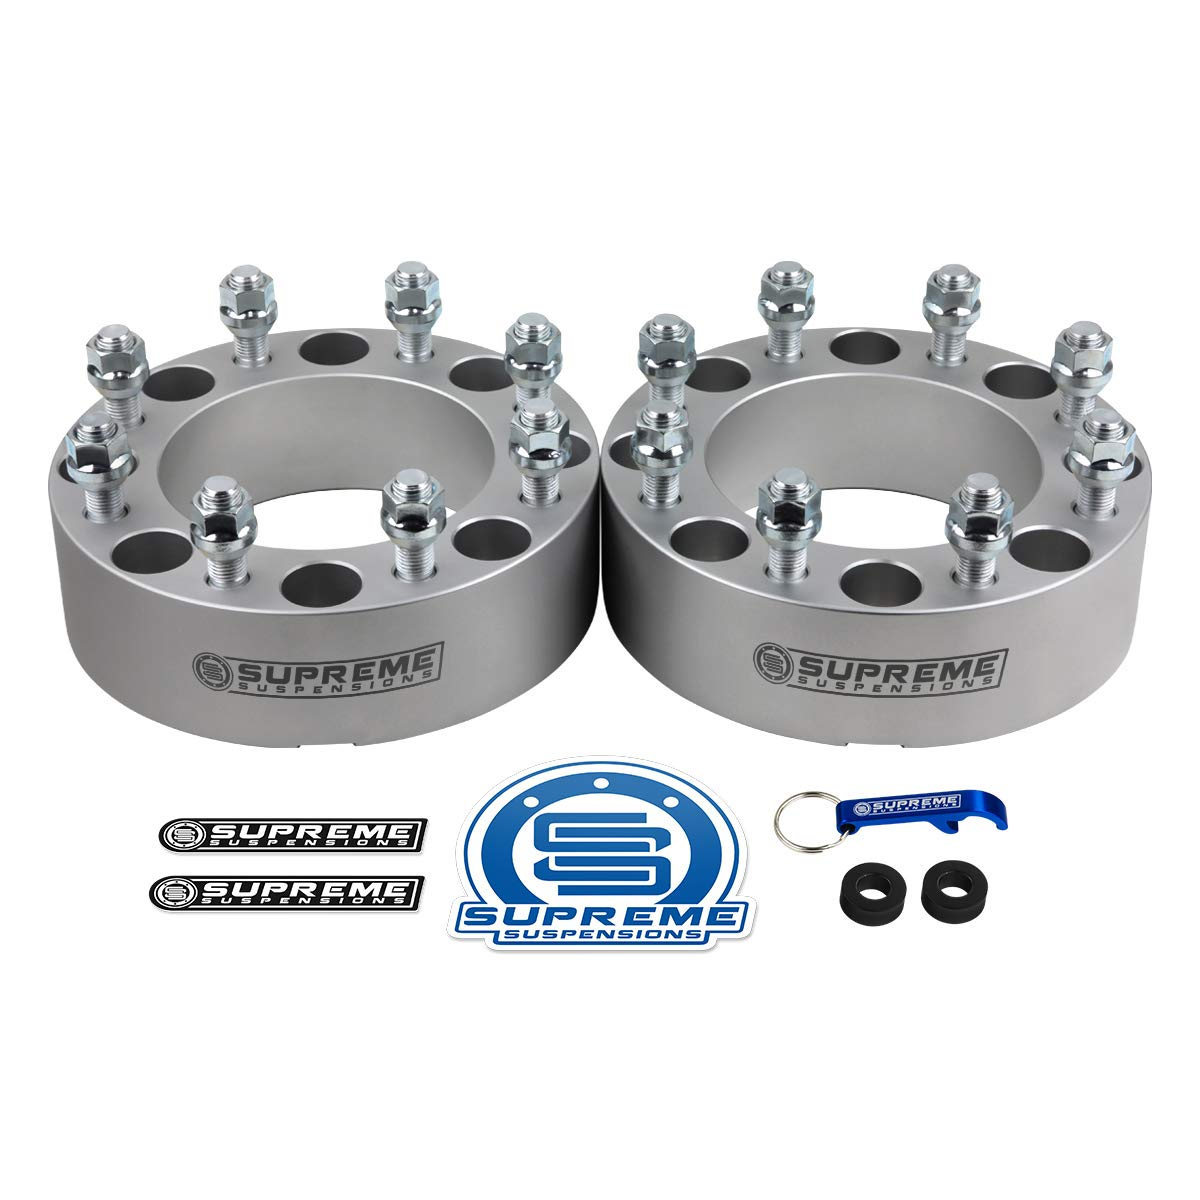 8x165.1mm BP with M14x1.5 Studs /& 130mm Center Bore Supreme Suspensions Silver 2pc 1.5 Wheel Spacers for 1988-2000 GMC K2500 4WD 8x6.5